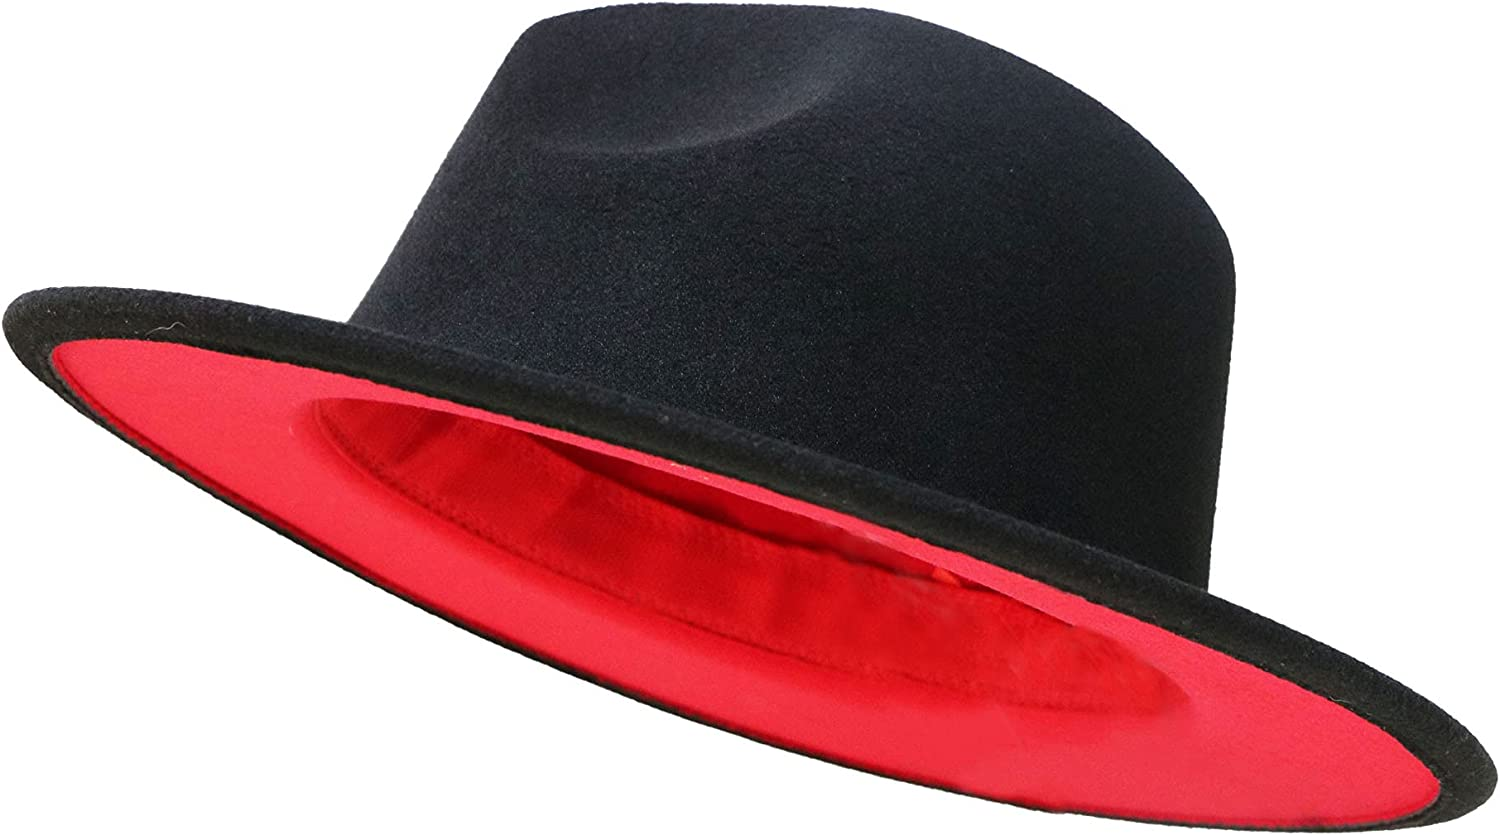 A surprise price is realized Max 49% OFF Women Felt-Fedora-Hat Classic Wide Brim Pan Two-Tone Wool Womens